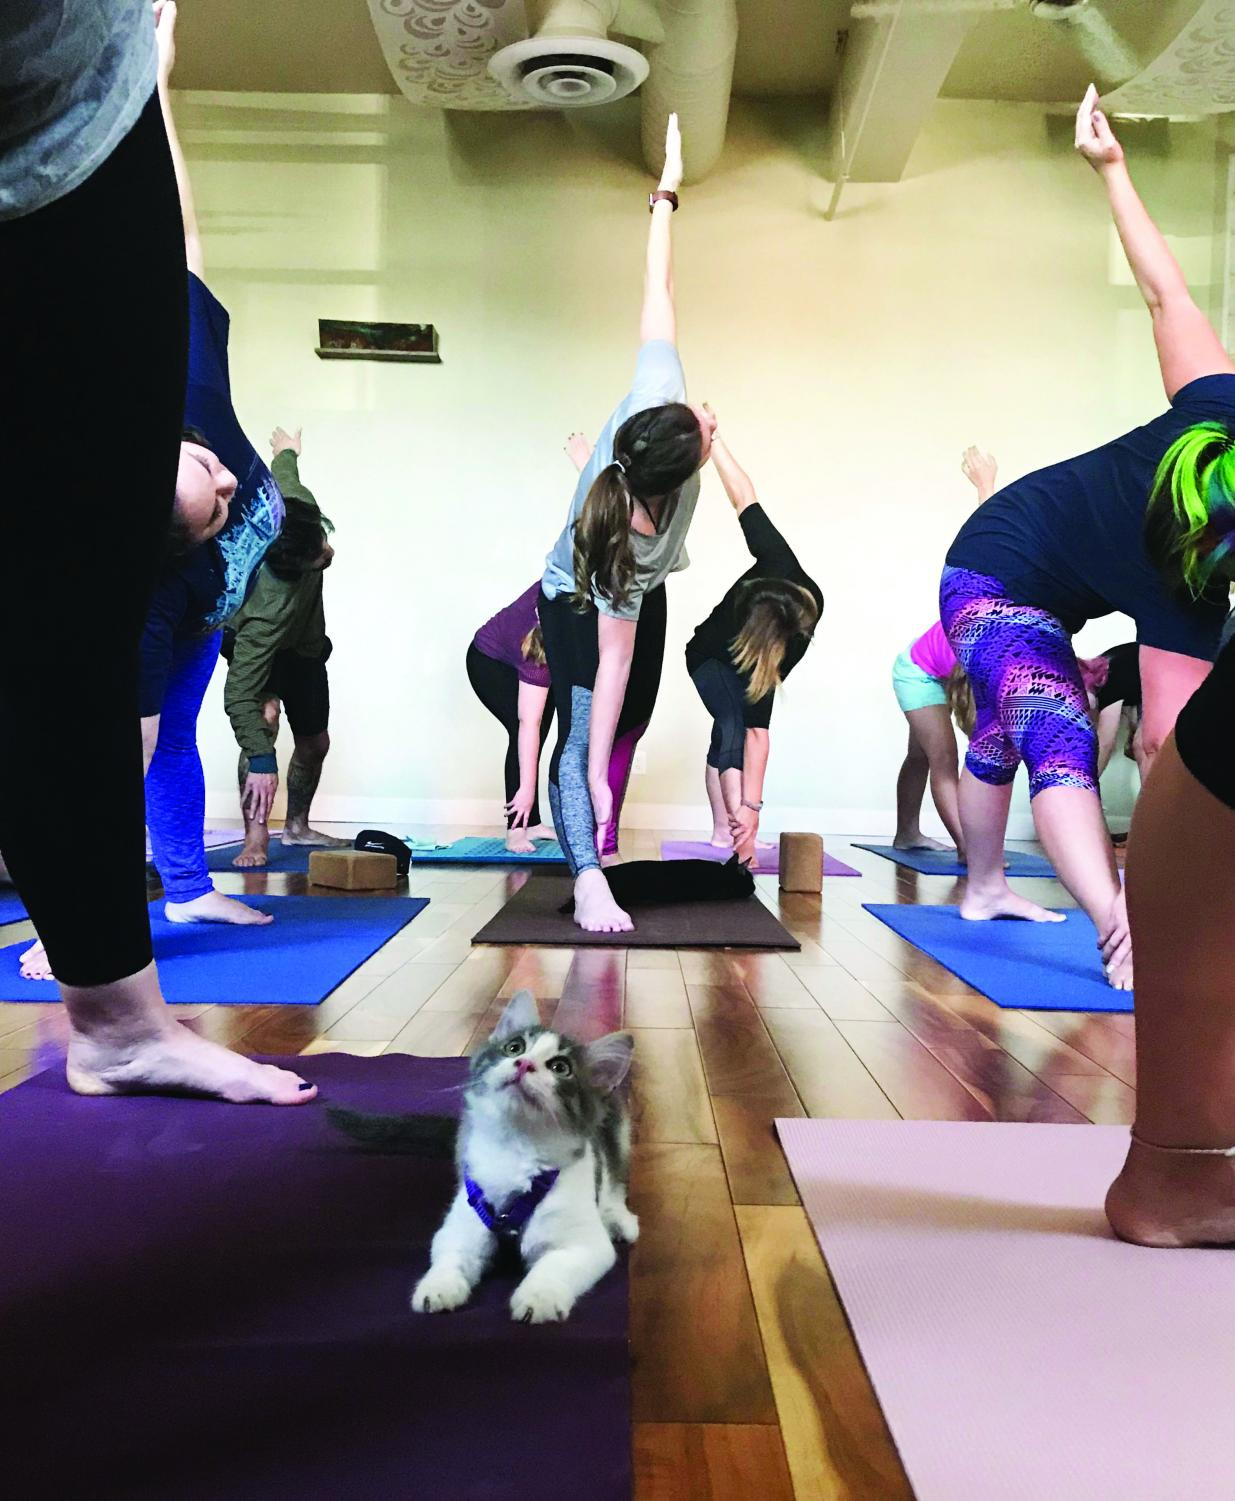 One of the kittens up for adoption looks at a yoga student.